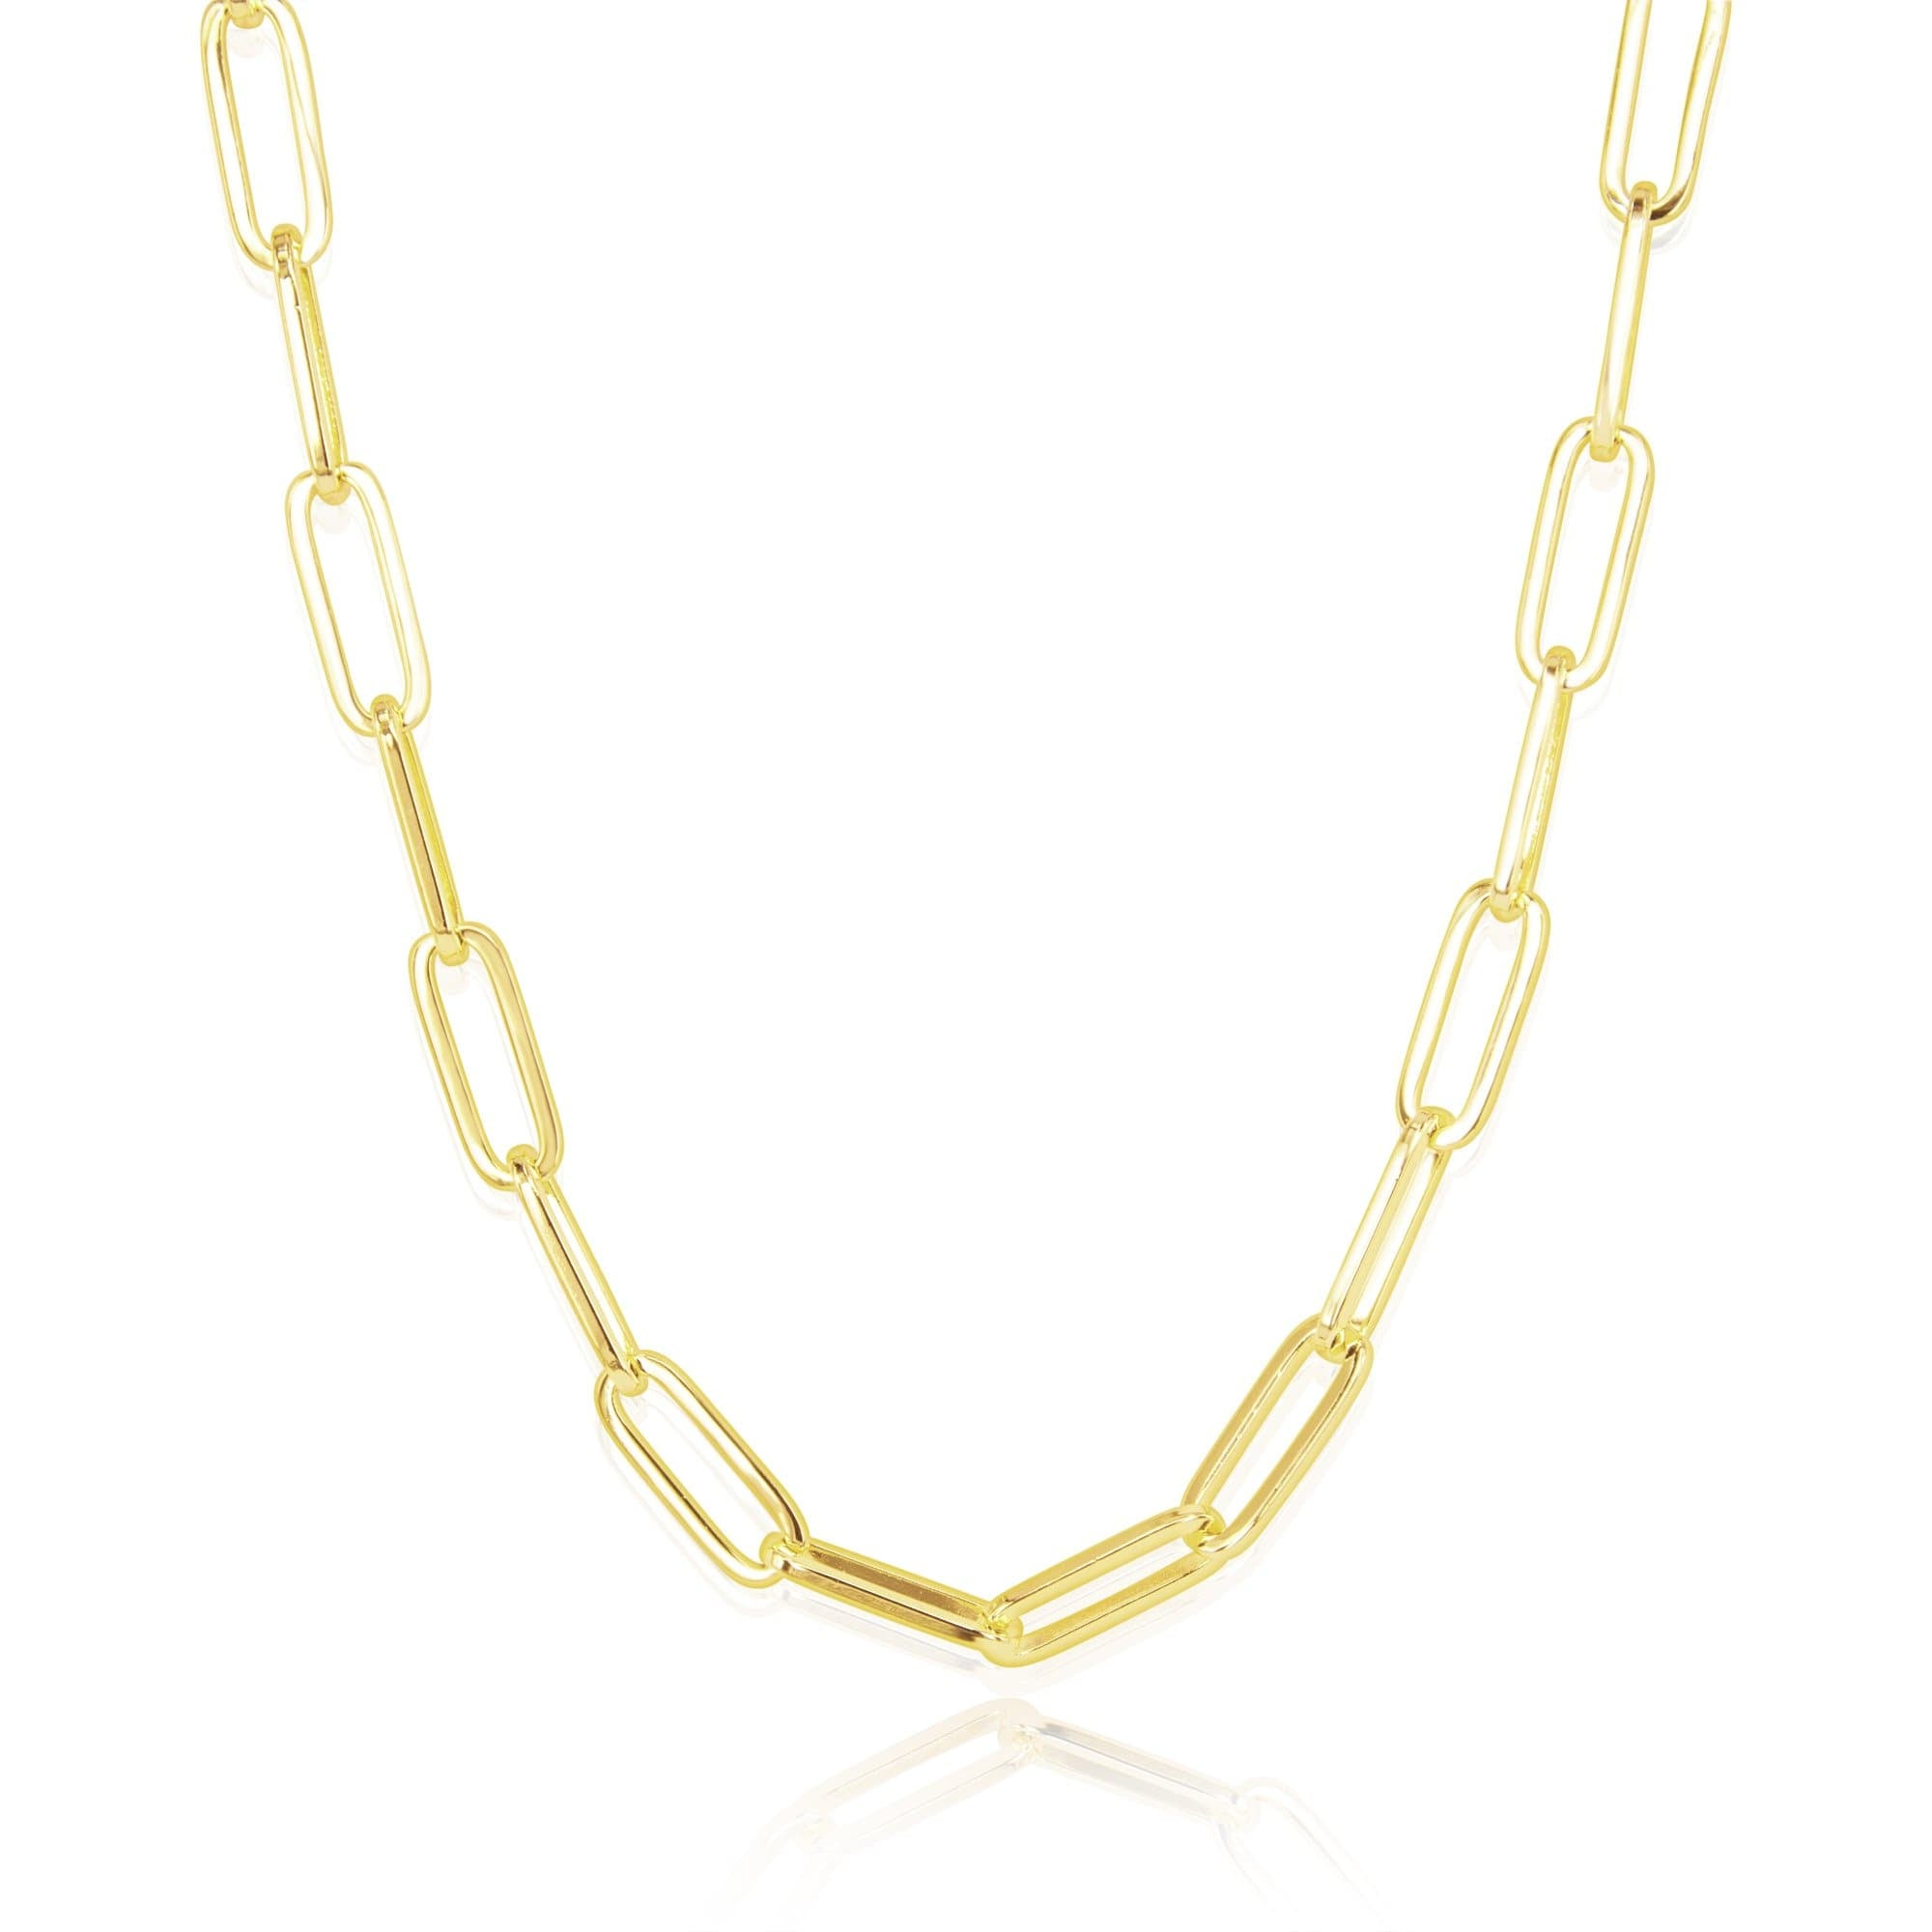 PRE-ORDER NOW - Carrie Chain Necklace